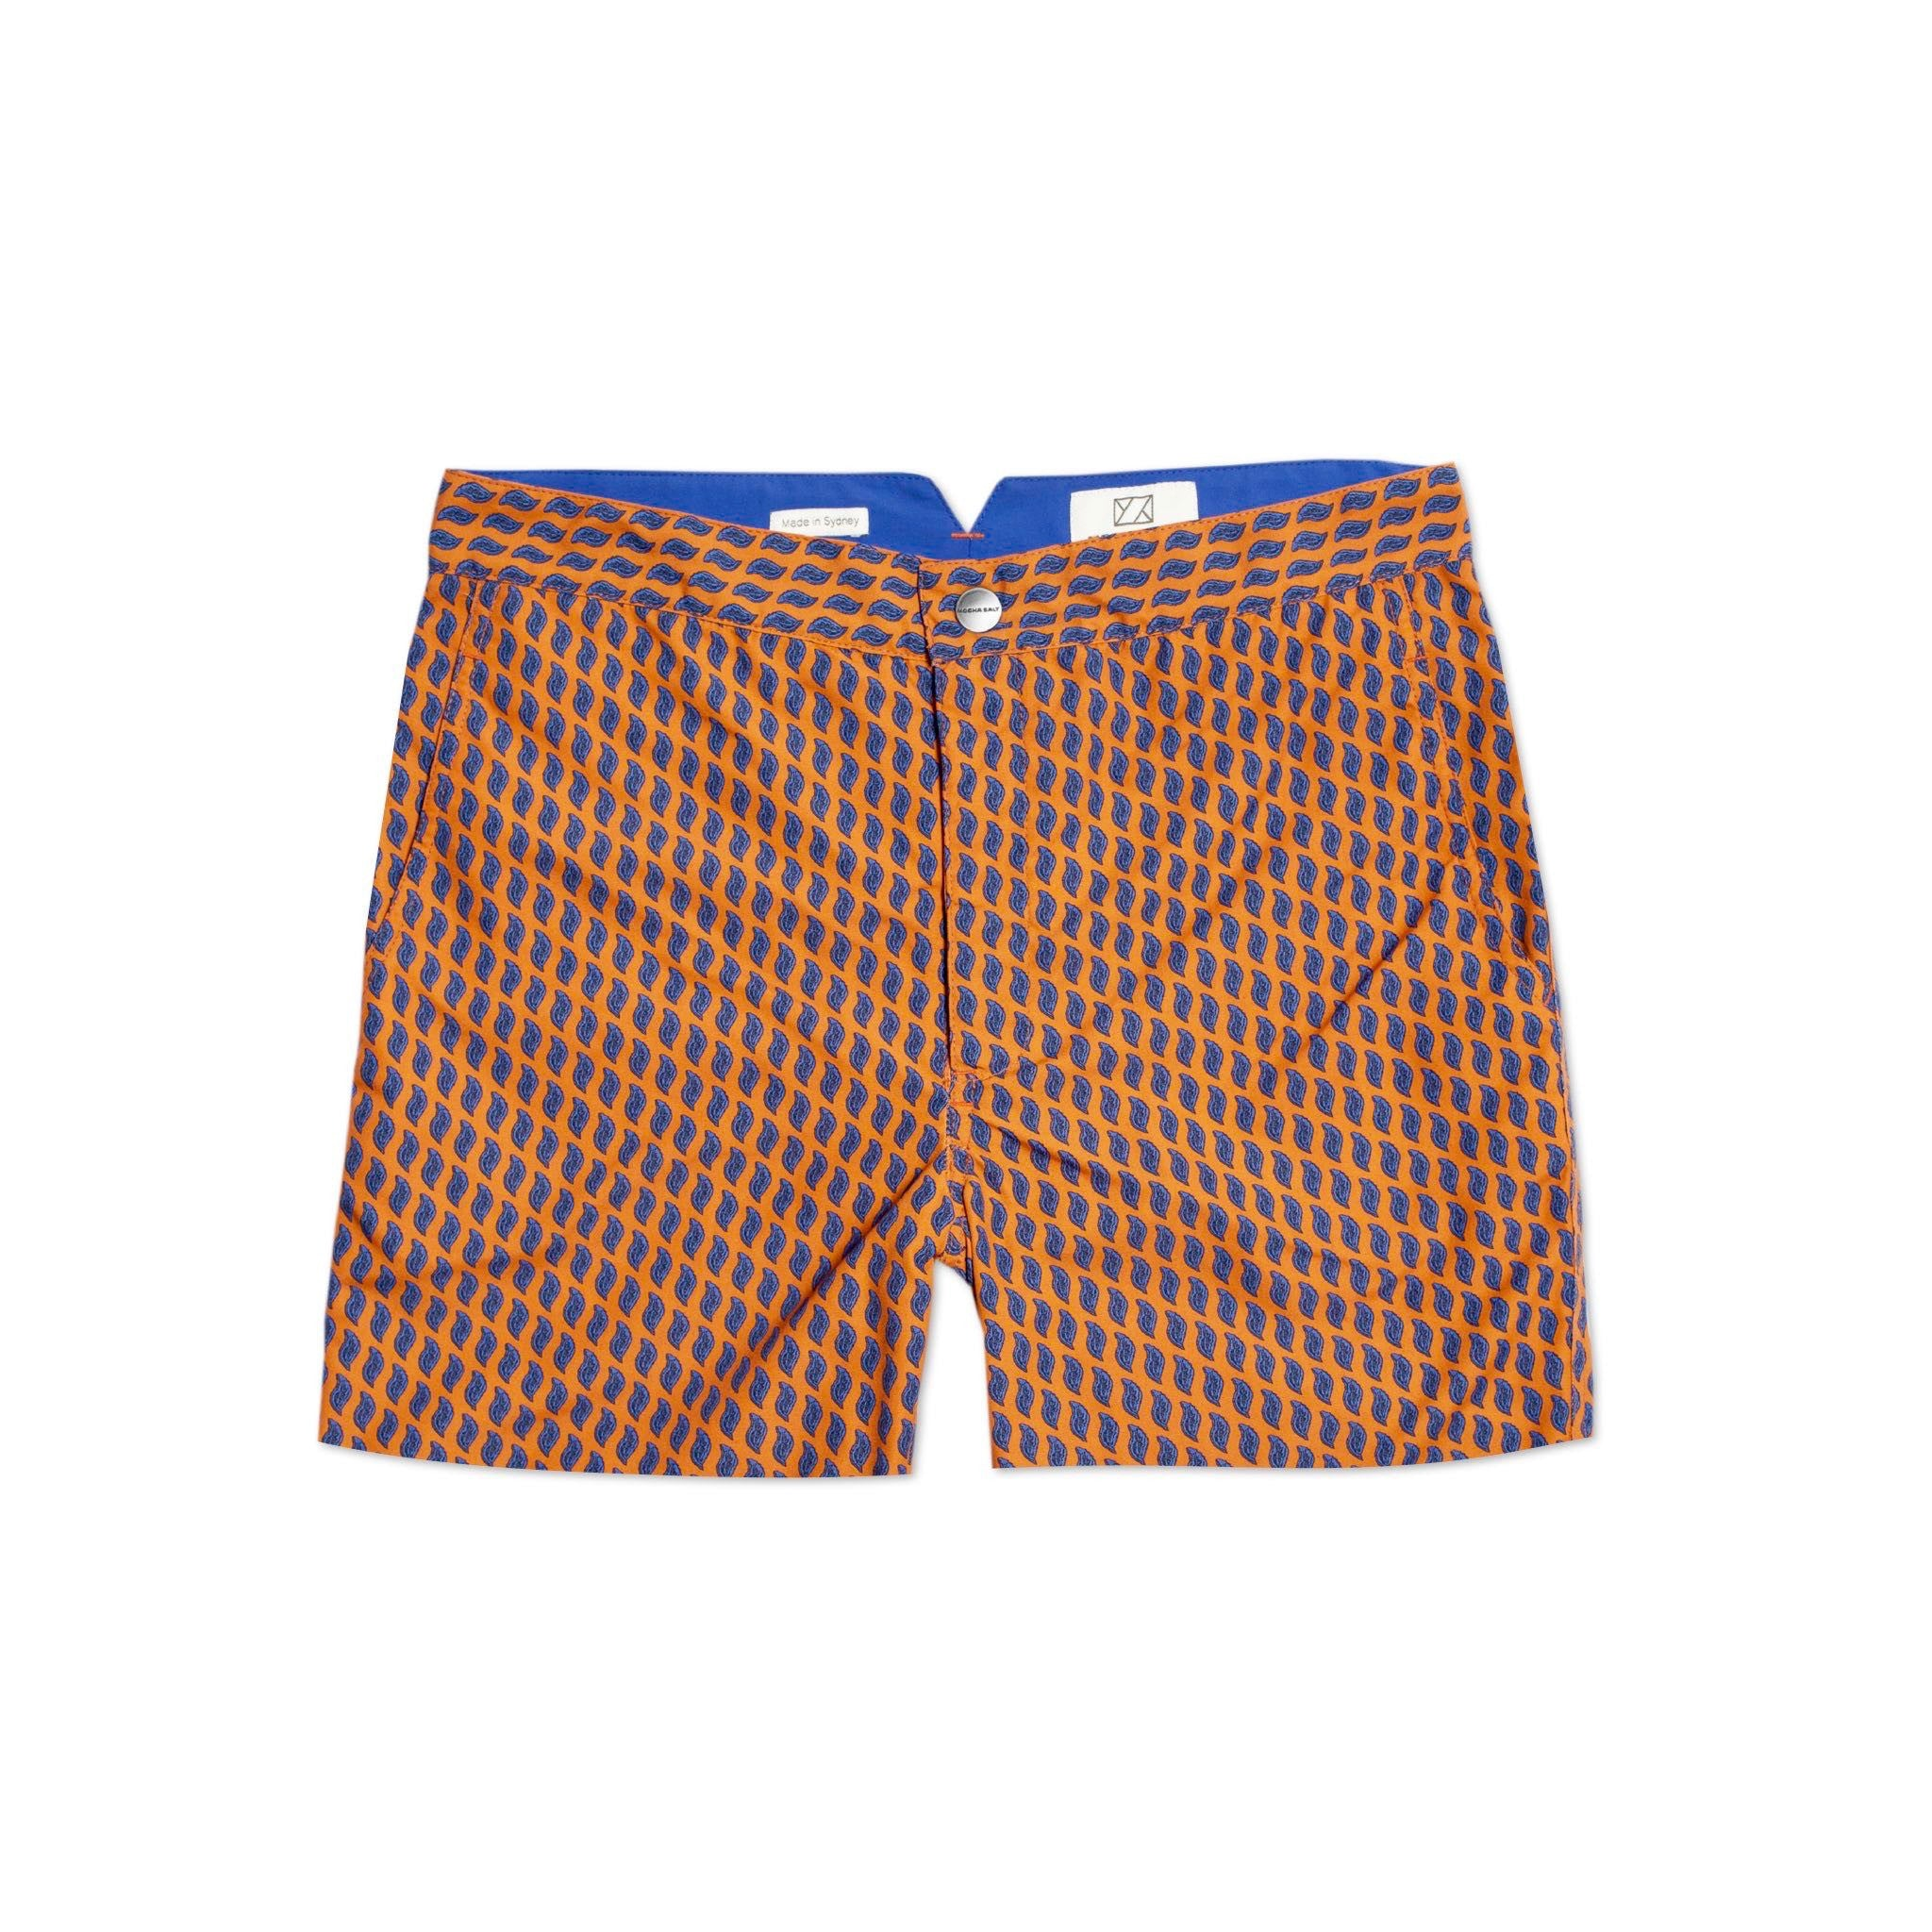 Huck 5 Seafern Orange swim shorts